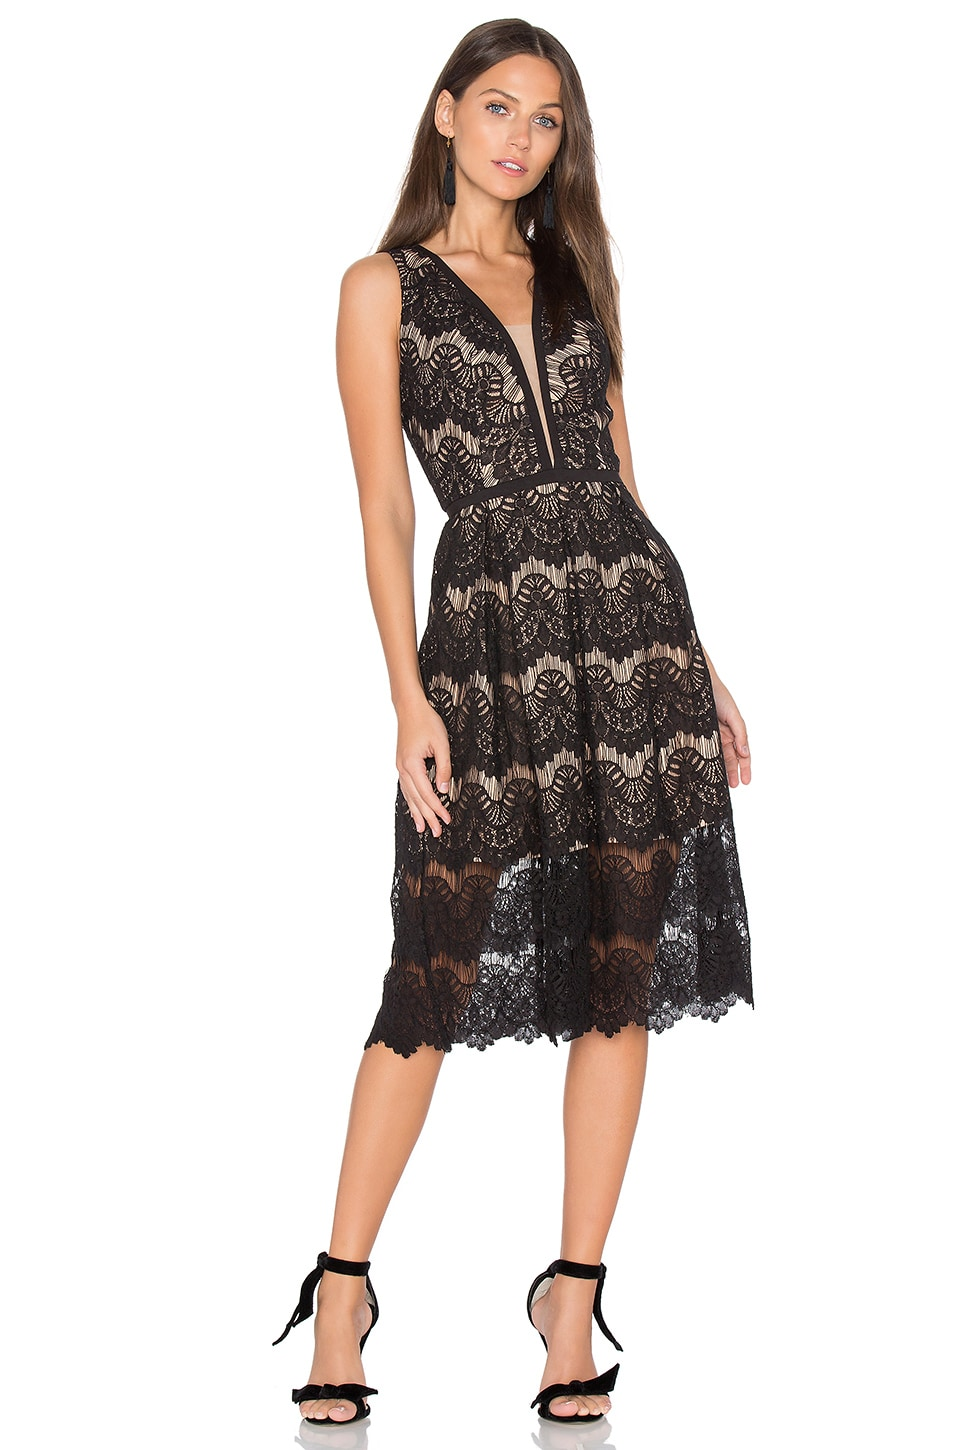 aijek Loyola Lace Midi Dress in Black